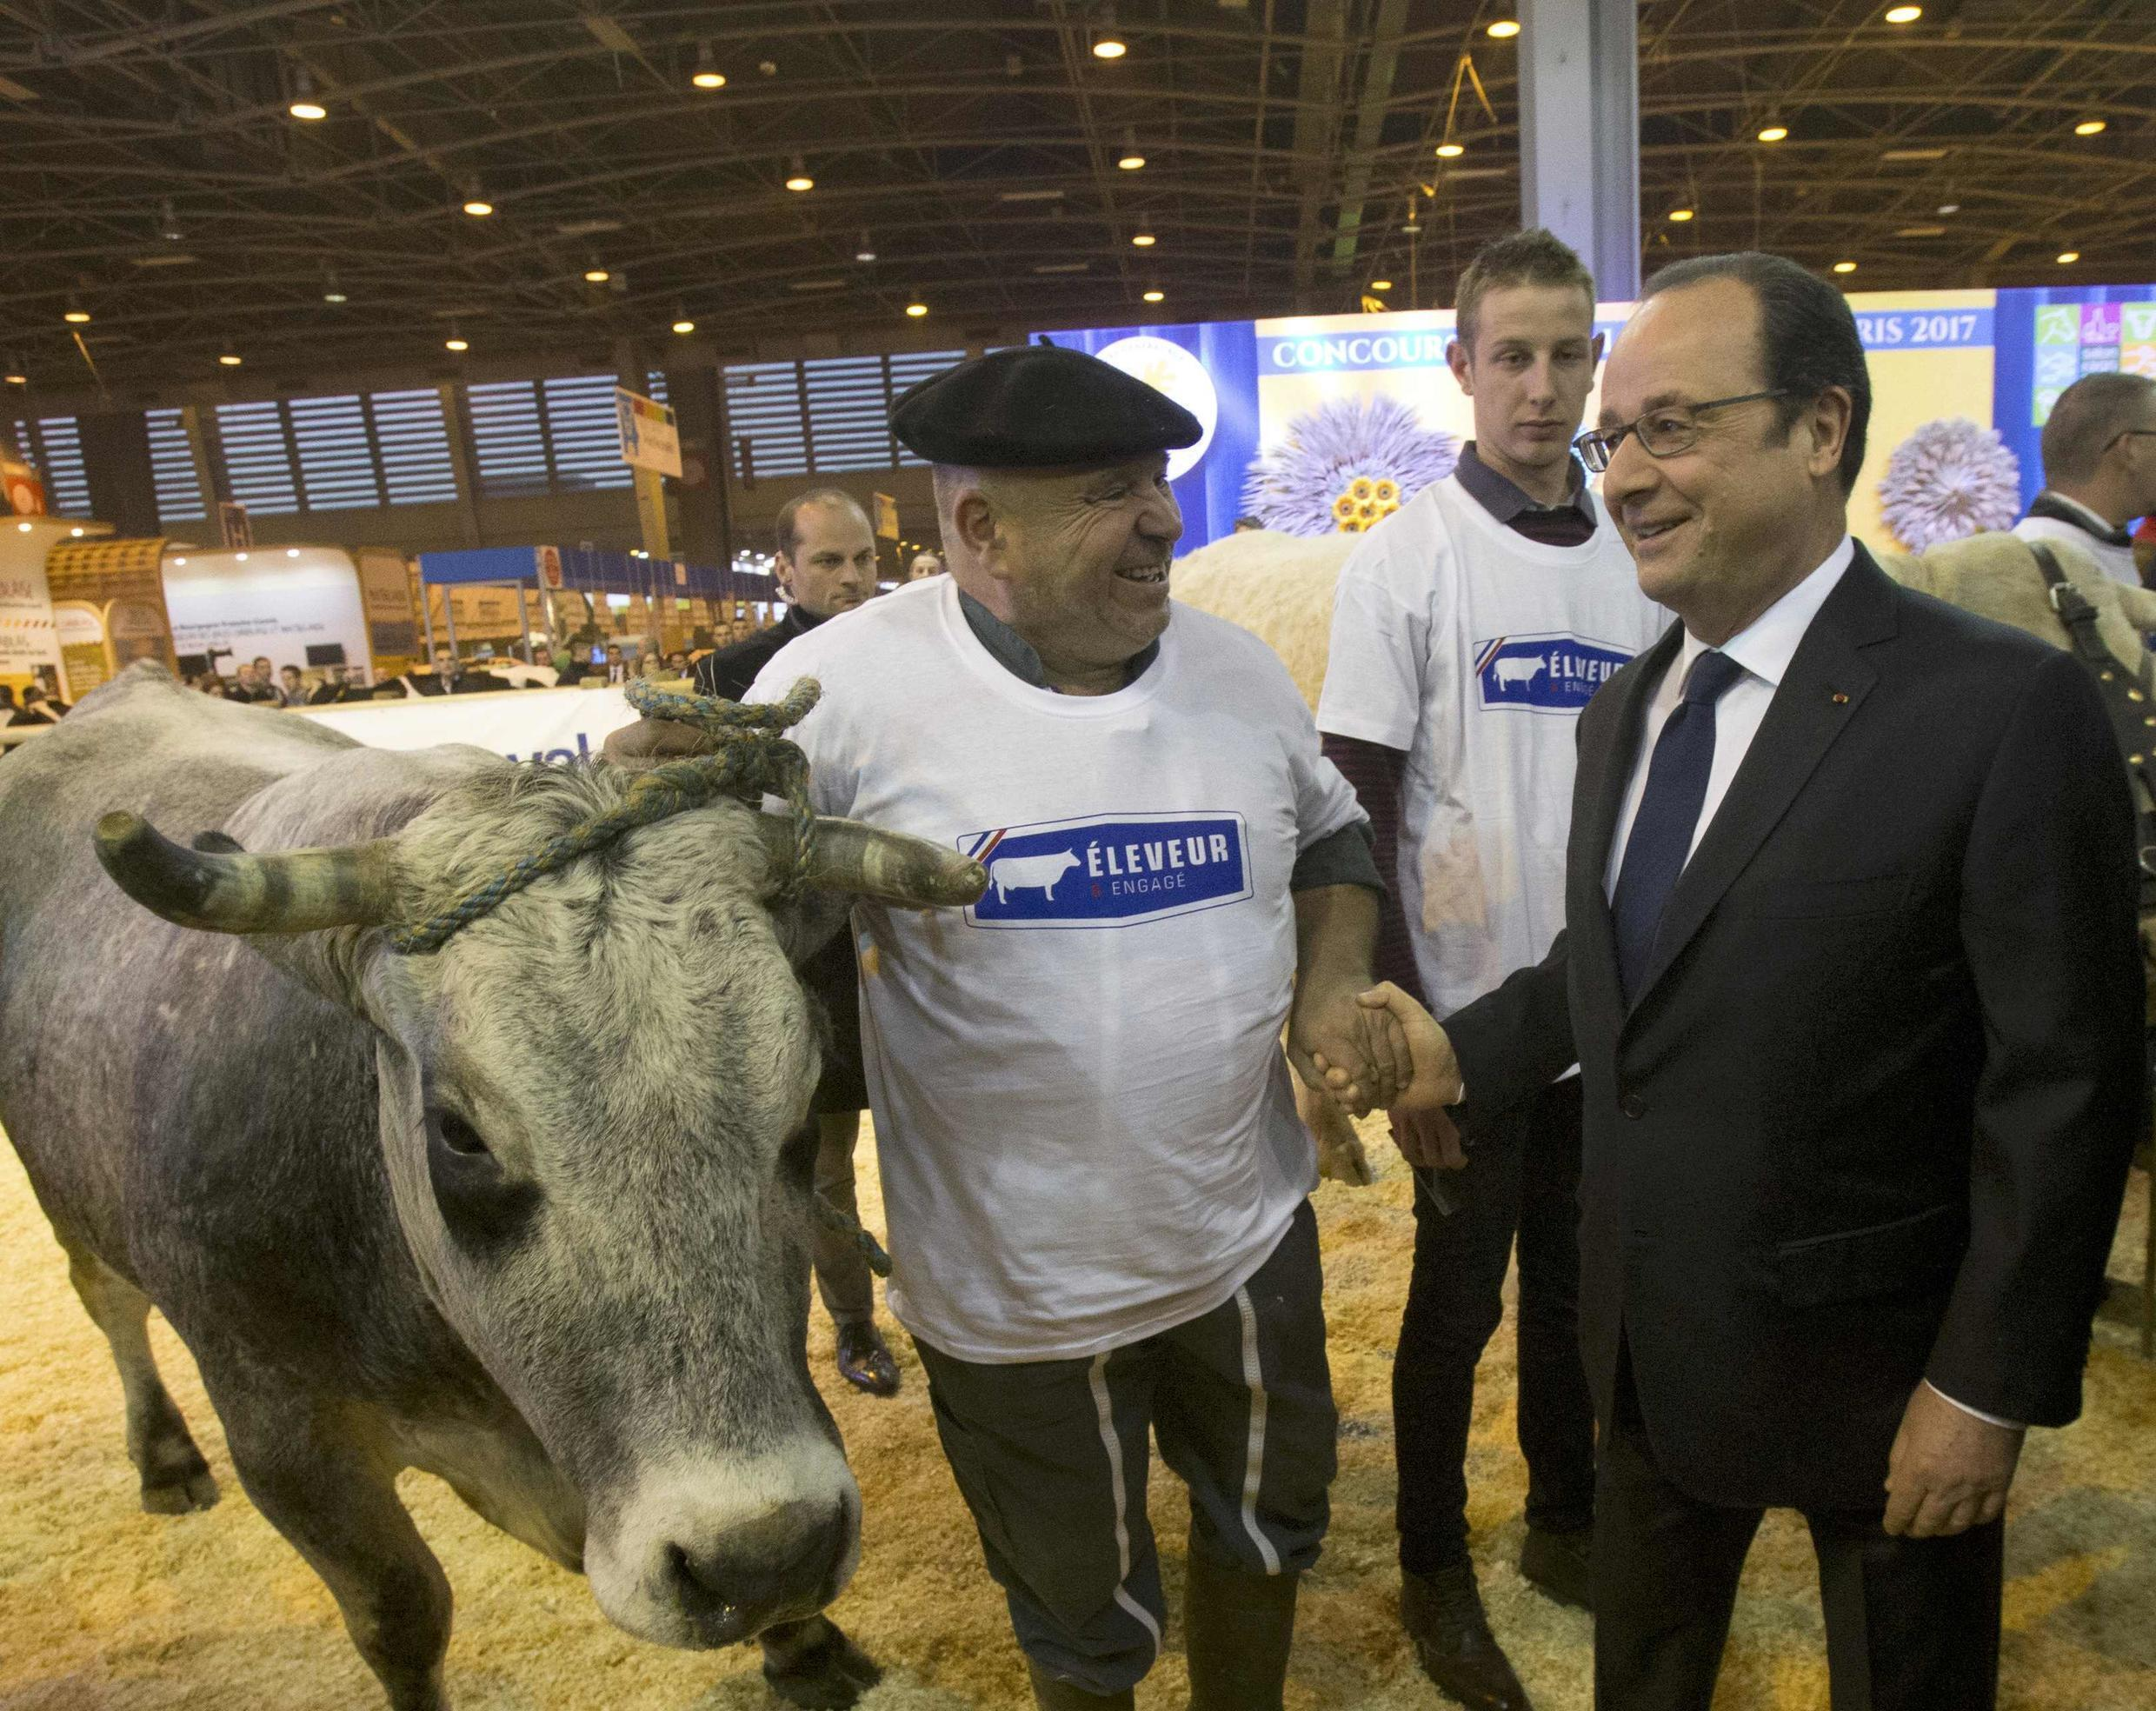 French President Francois Hollande (R) visits the International Agricultural Show in Paris, France, February 25, 2017. The Paris